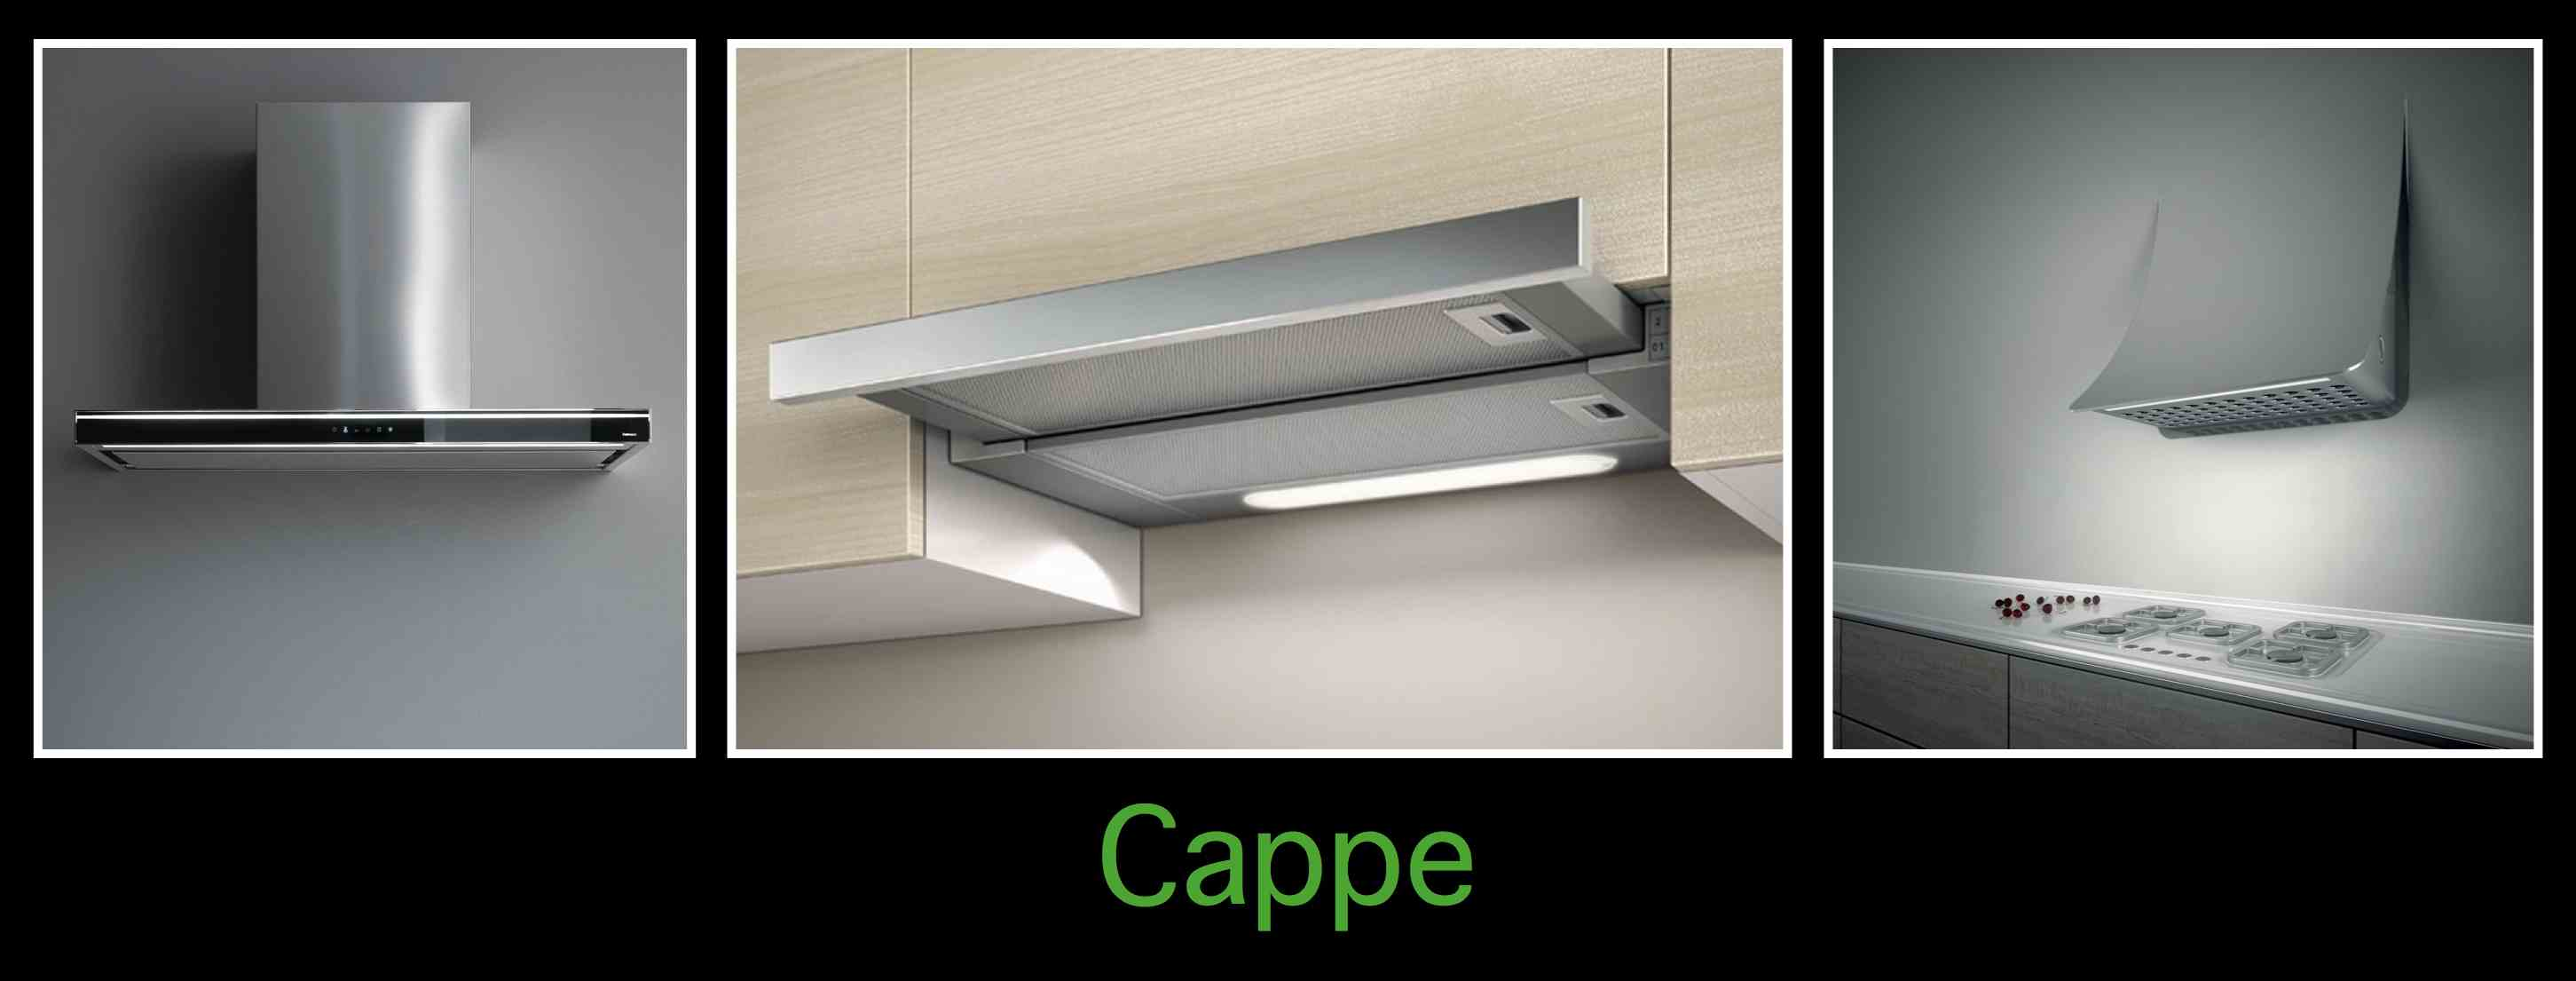 Cappe